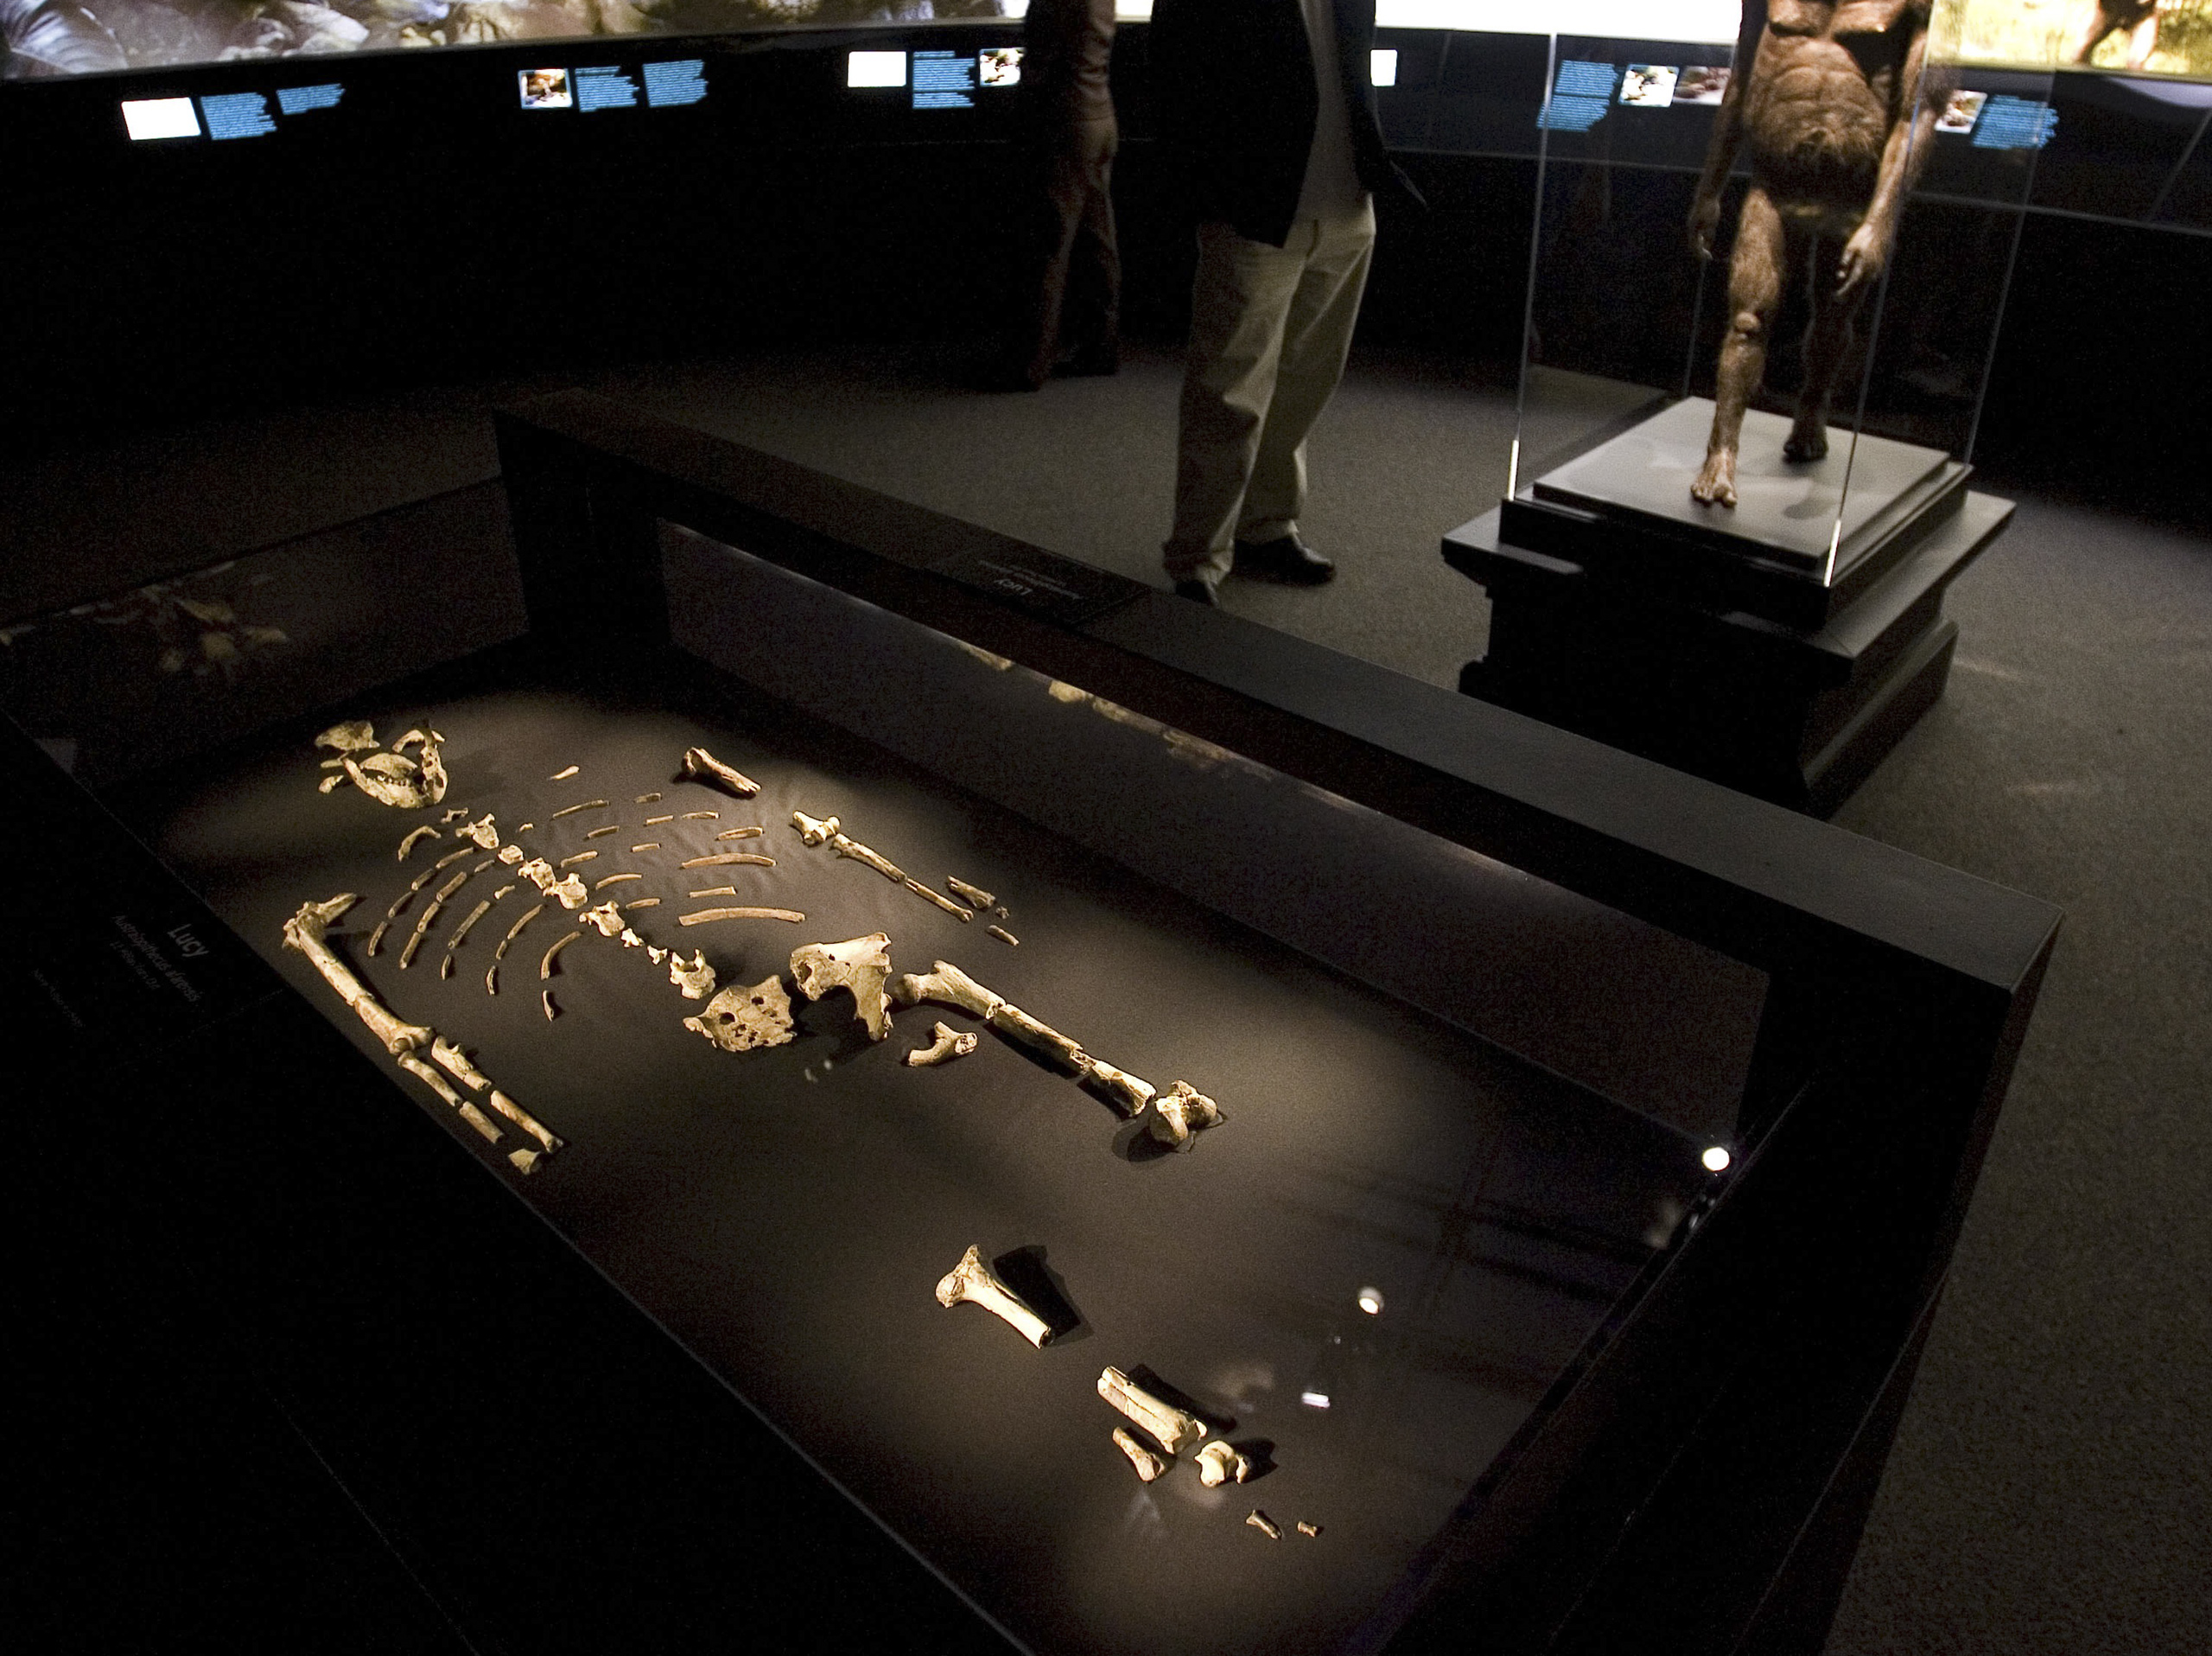 The 3.2 million year old fossilized remains of  Lucy , the most complete example of the hominid Australopithecus afarensis, is displayed at the Houston Museum of Natural Science in Houston on Aug. 28, 2007.